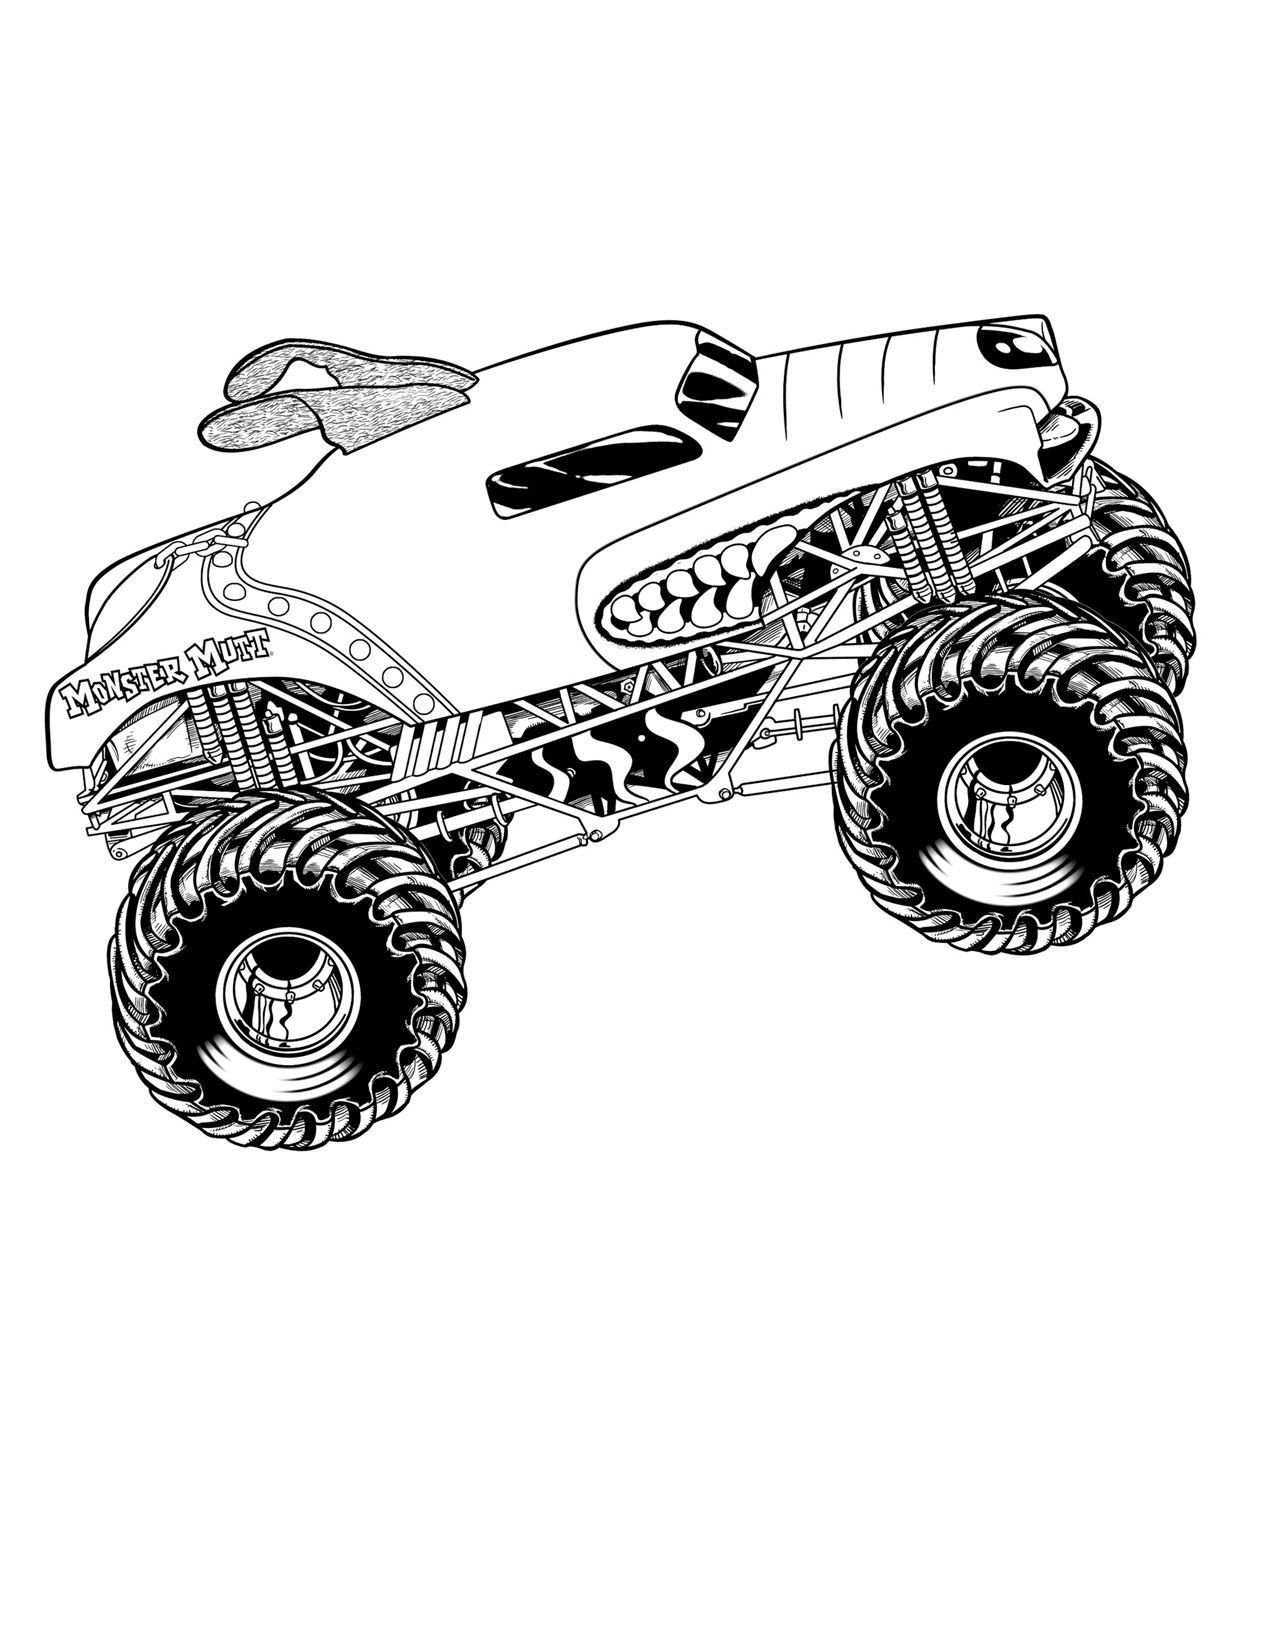 free monster truck coloring page transportation coloring pages pinterest monster trucks monsters and free - Monster Truck Coloring Page